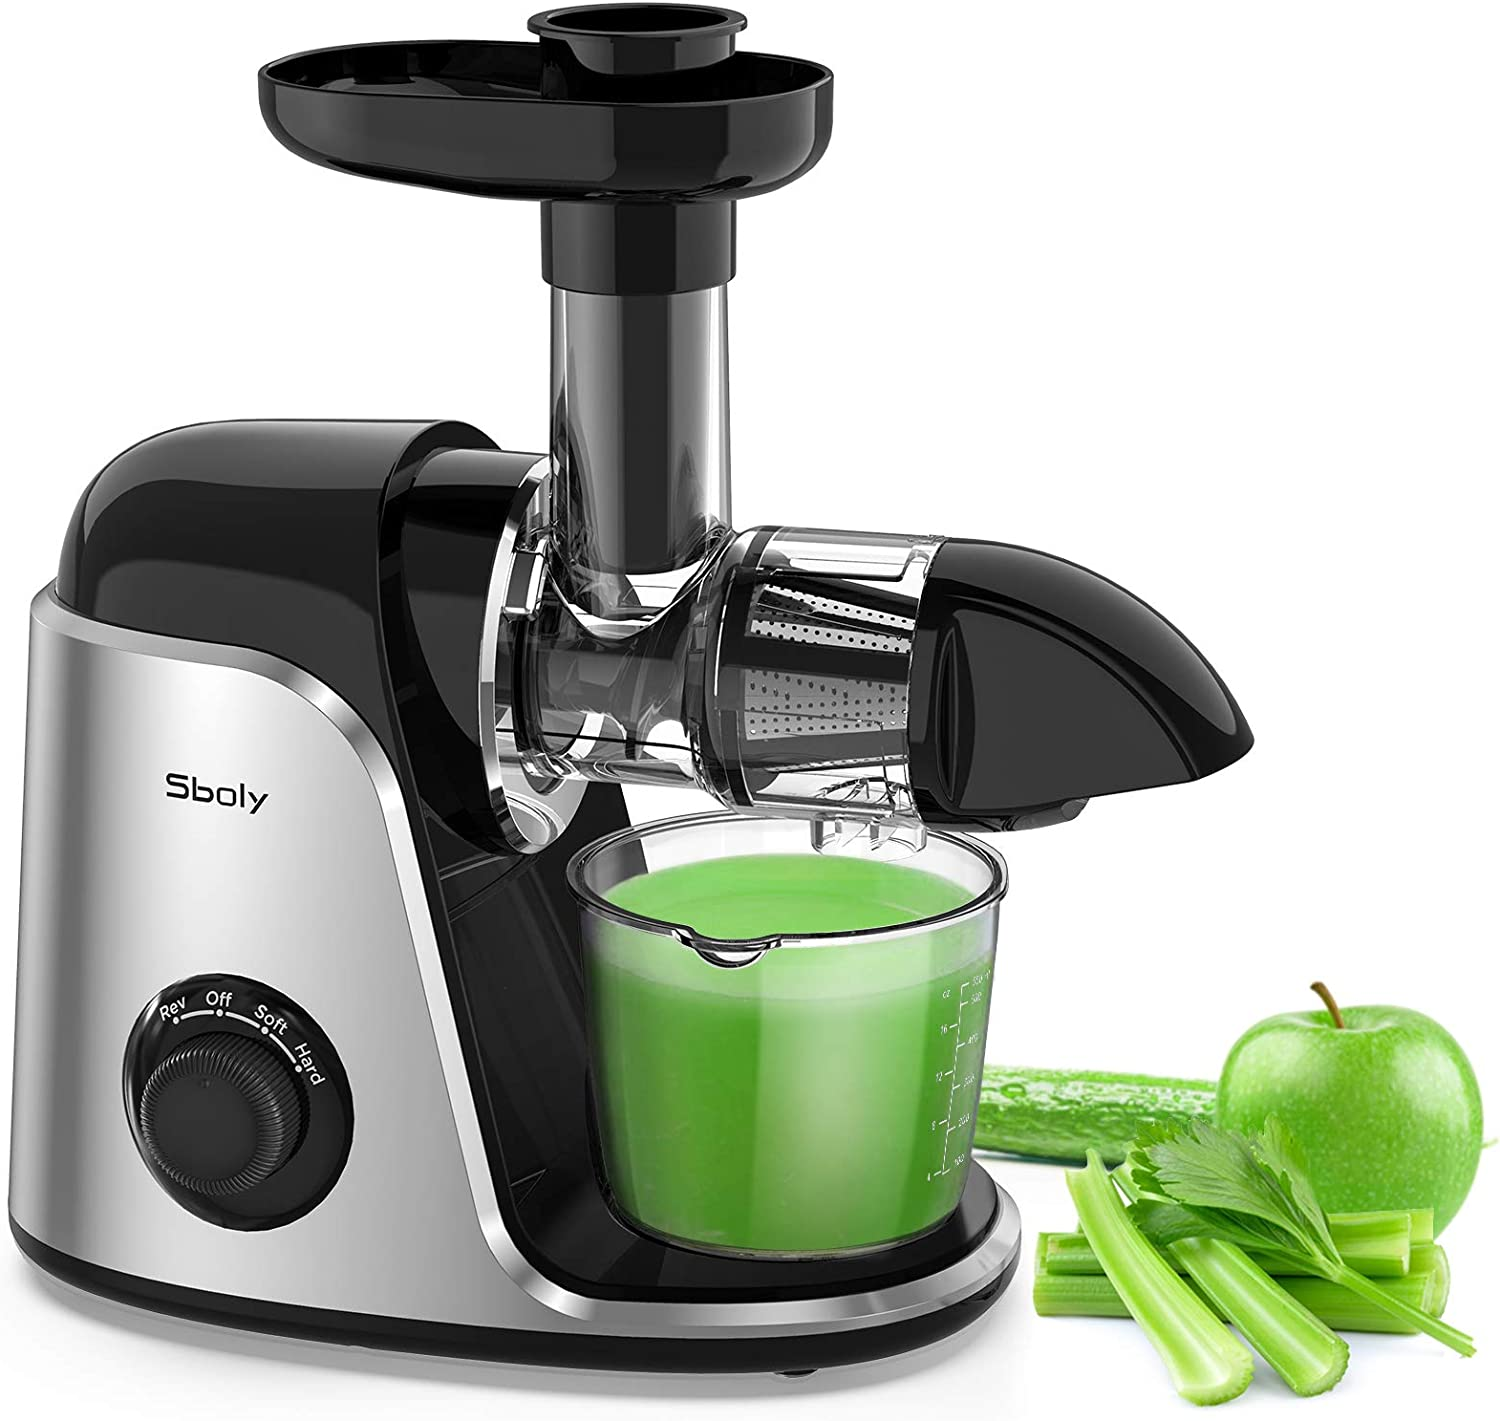 Sboly Juicer Machines, Slow Masticating Juicer Extractor with 2 Speed Modes & Reverse Function, BPA-Free Cold Press Juicer with Quiet Motor, Includes Cleaning Brush & Recipes for Vegetables and Fruits